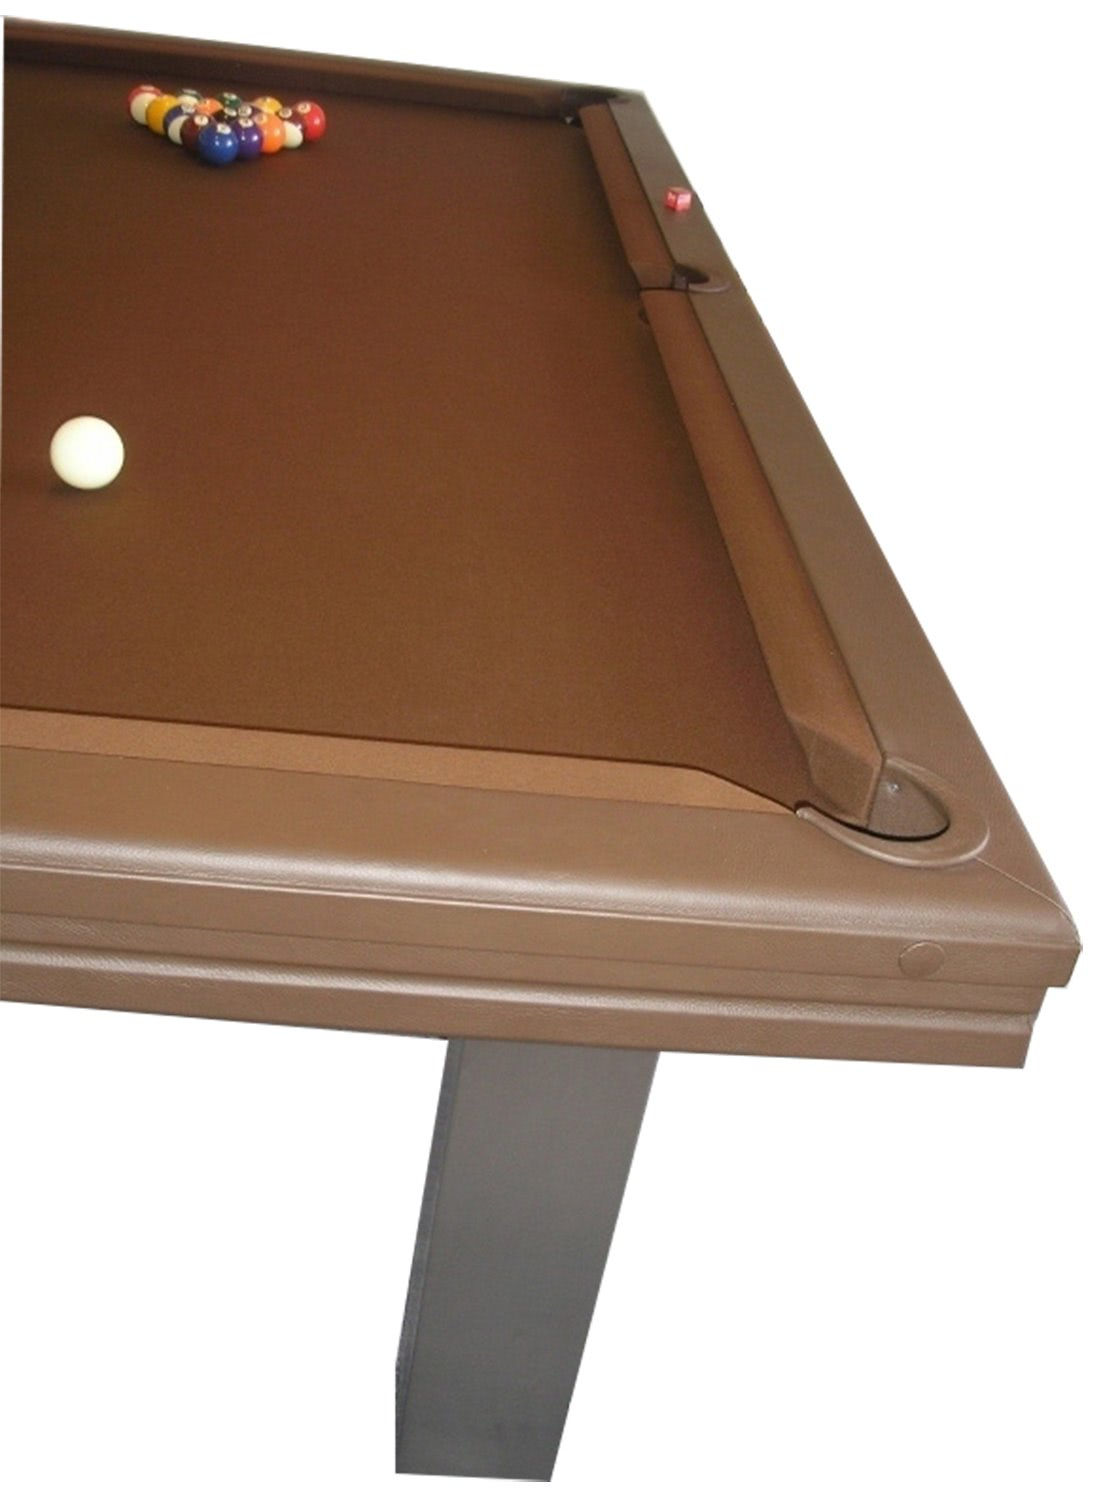 Billard toulet leatherlux pool table 8 ft 9 ft liberty games leatherlux table side keyboard keysfo Image collections